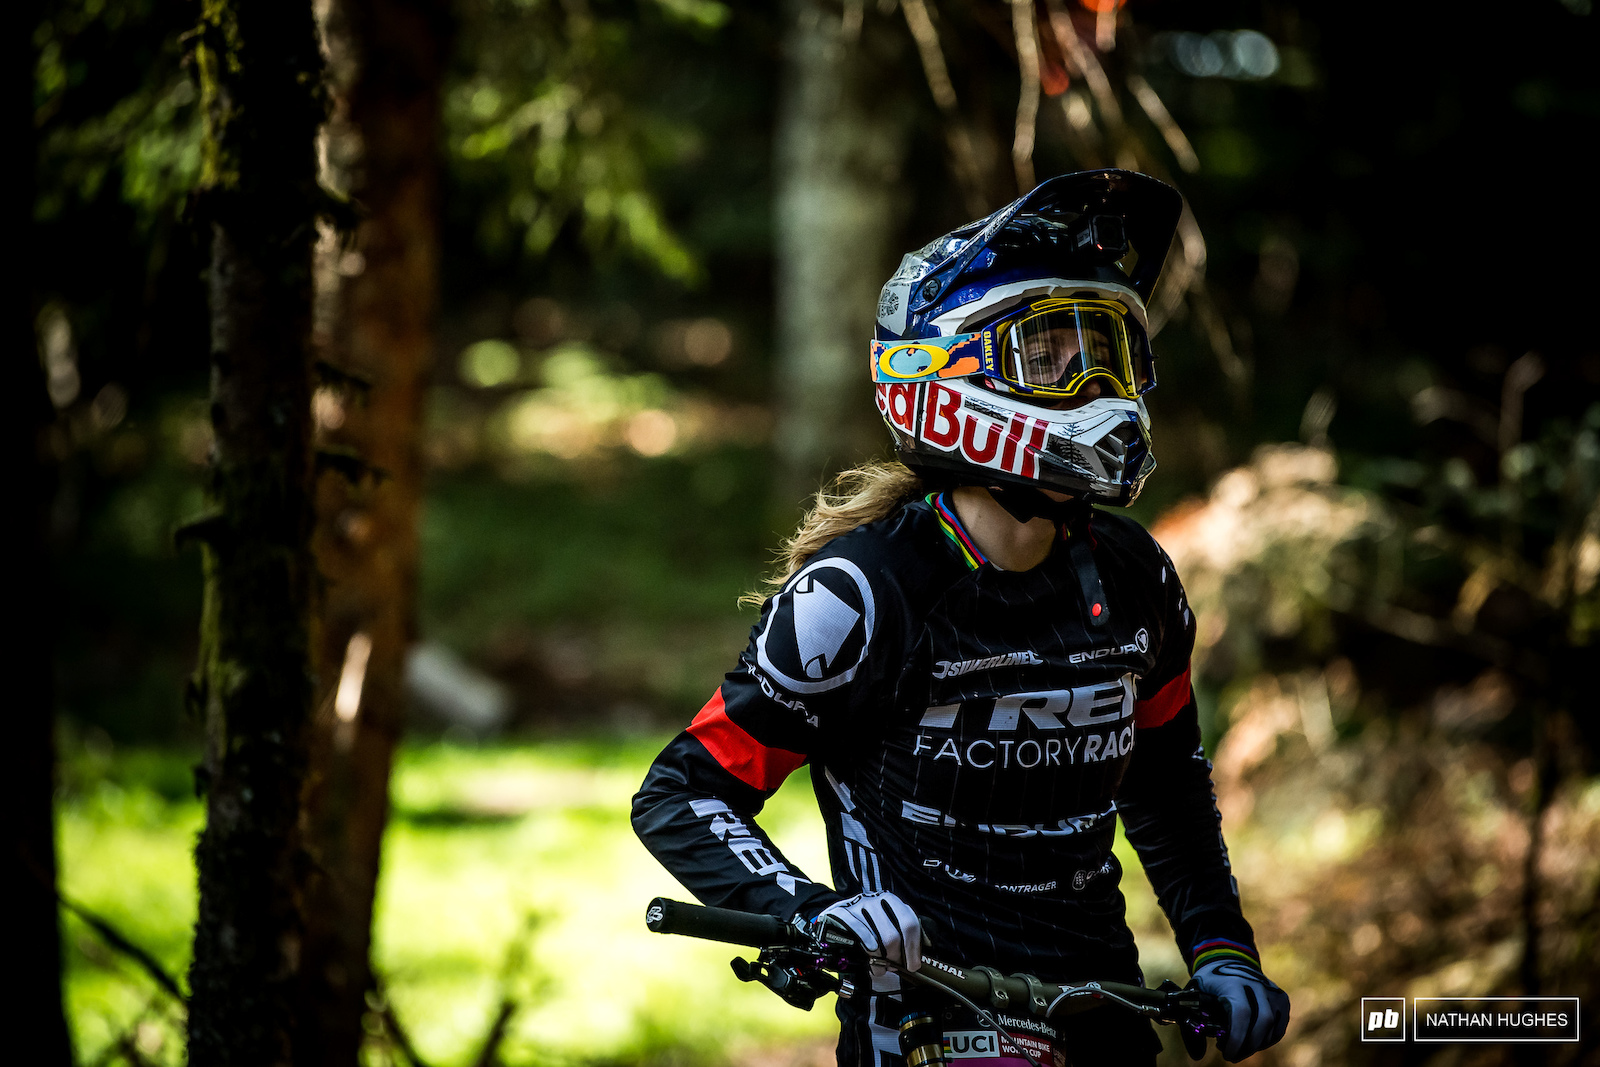 Rachel Atherton trying to find the race line at the close of the timed session.